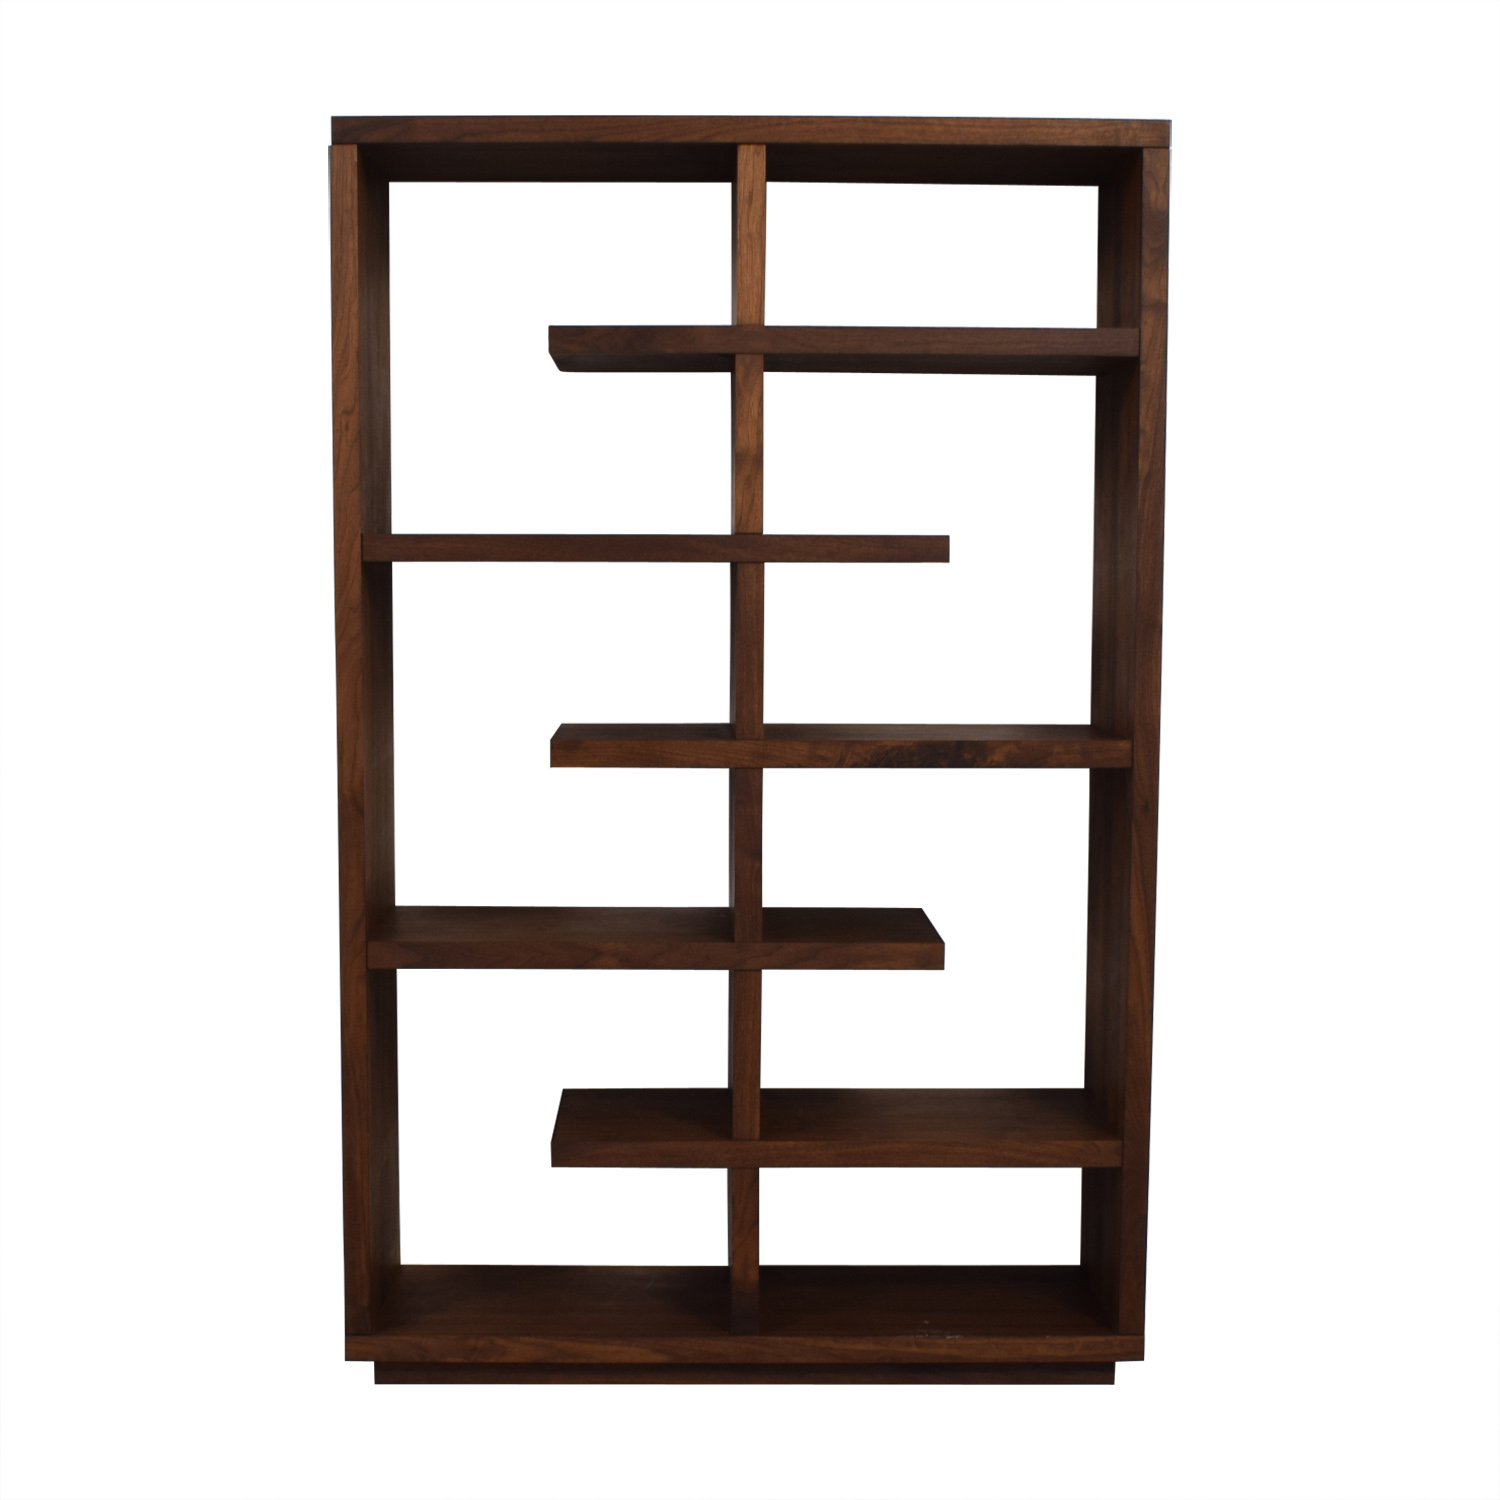 Crate & Barrel Crate & Barrel Elevate Walnut Bookcase price